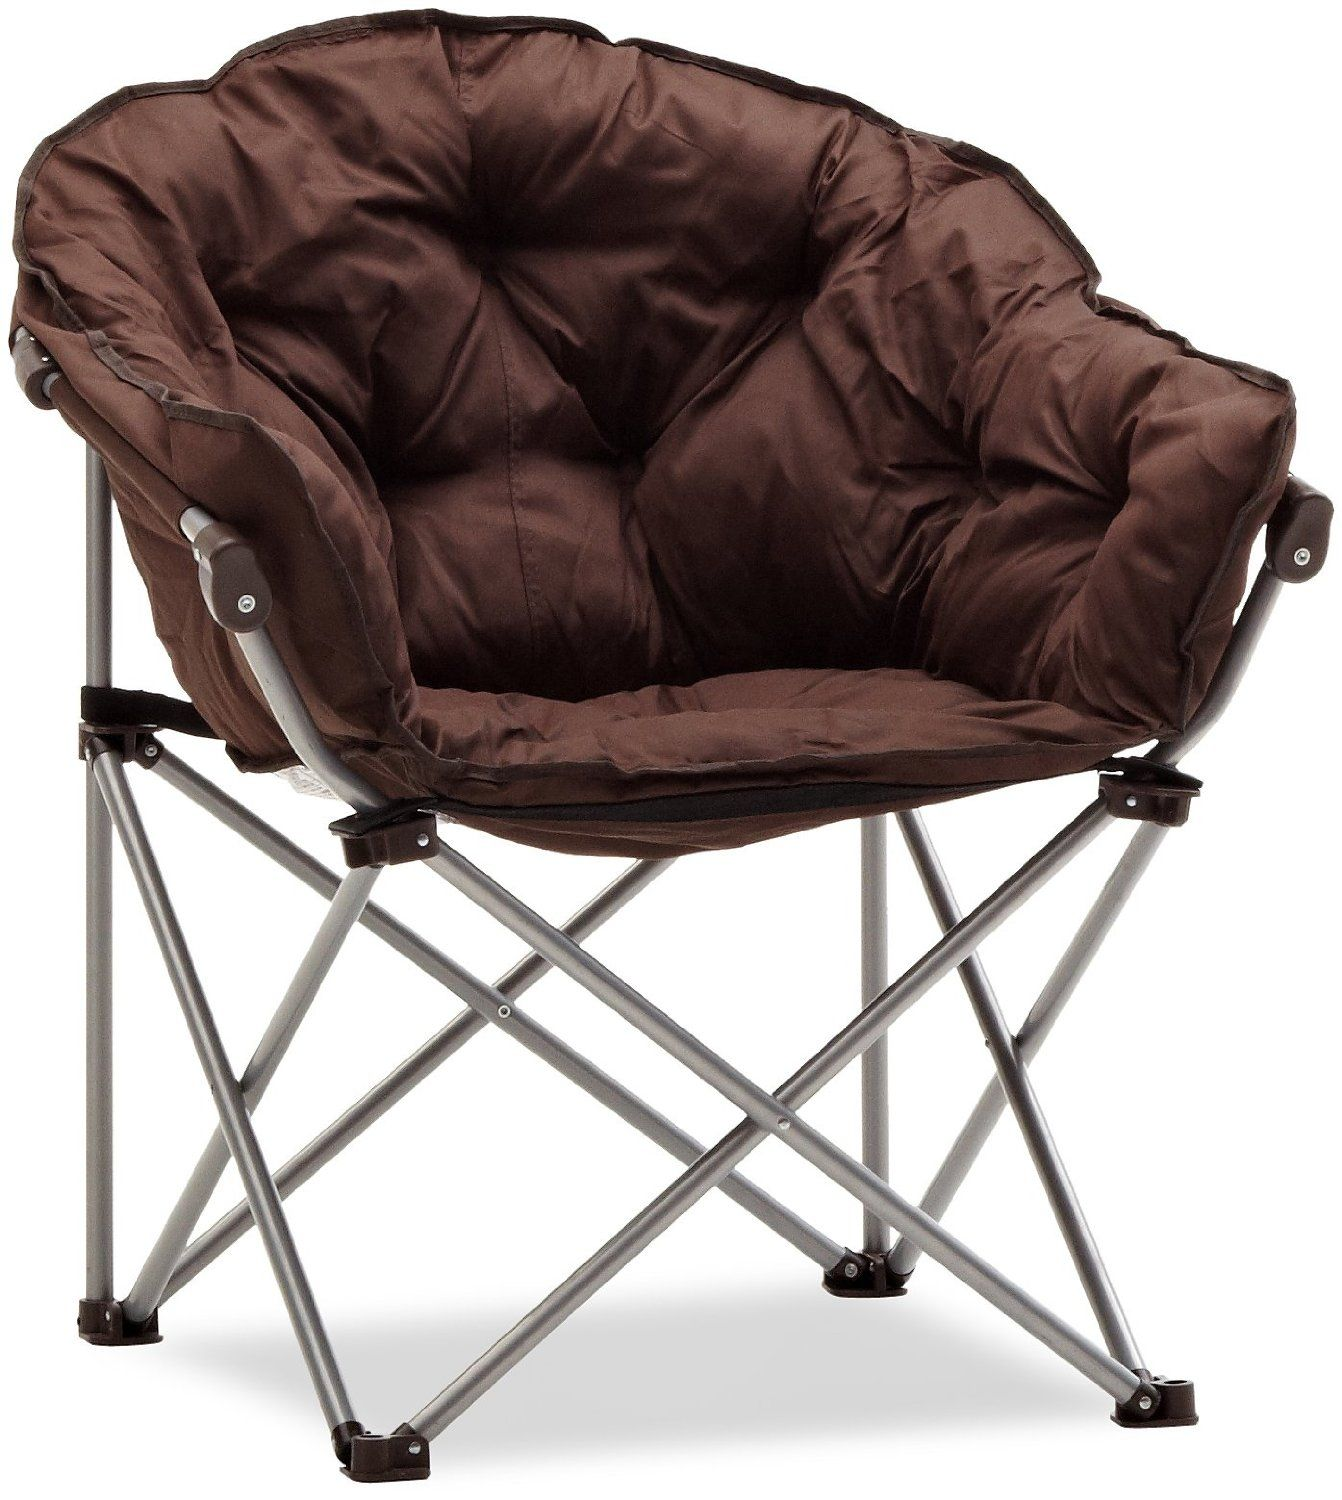 4 Inexpensive Comfortable Camping Chairs In 2020 Comfortable